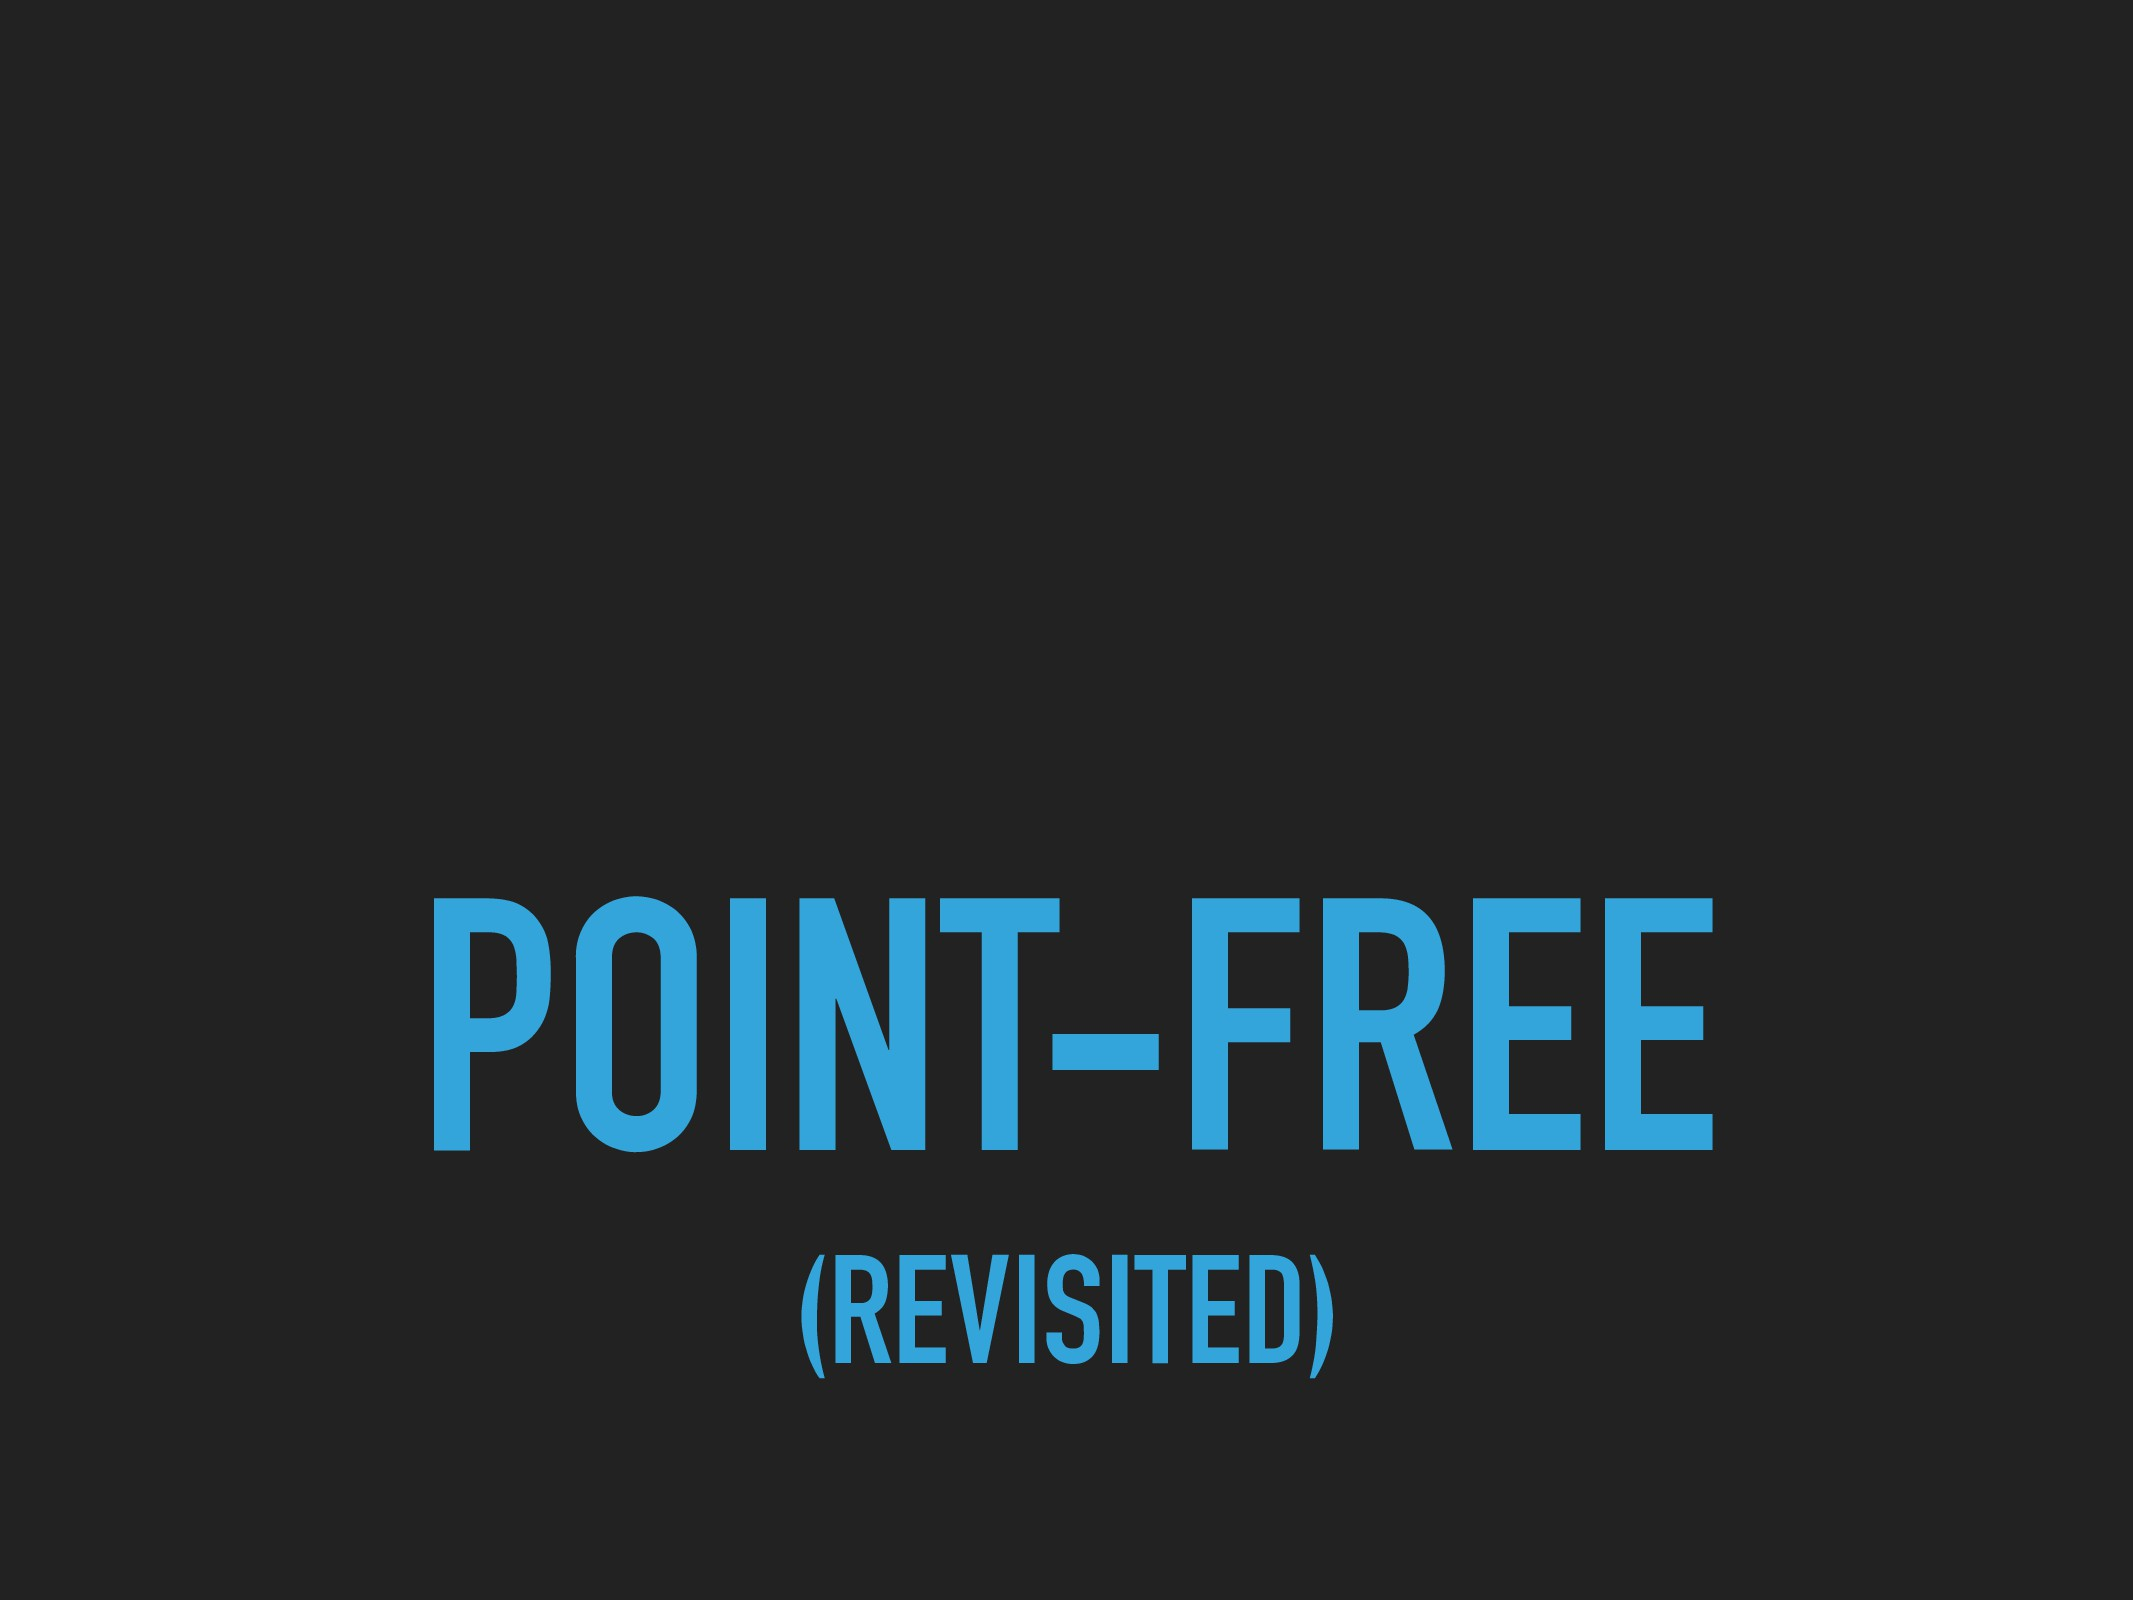 POINT-FREE (REVISITED)